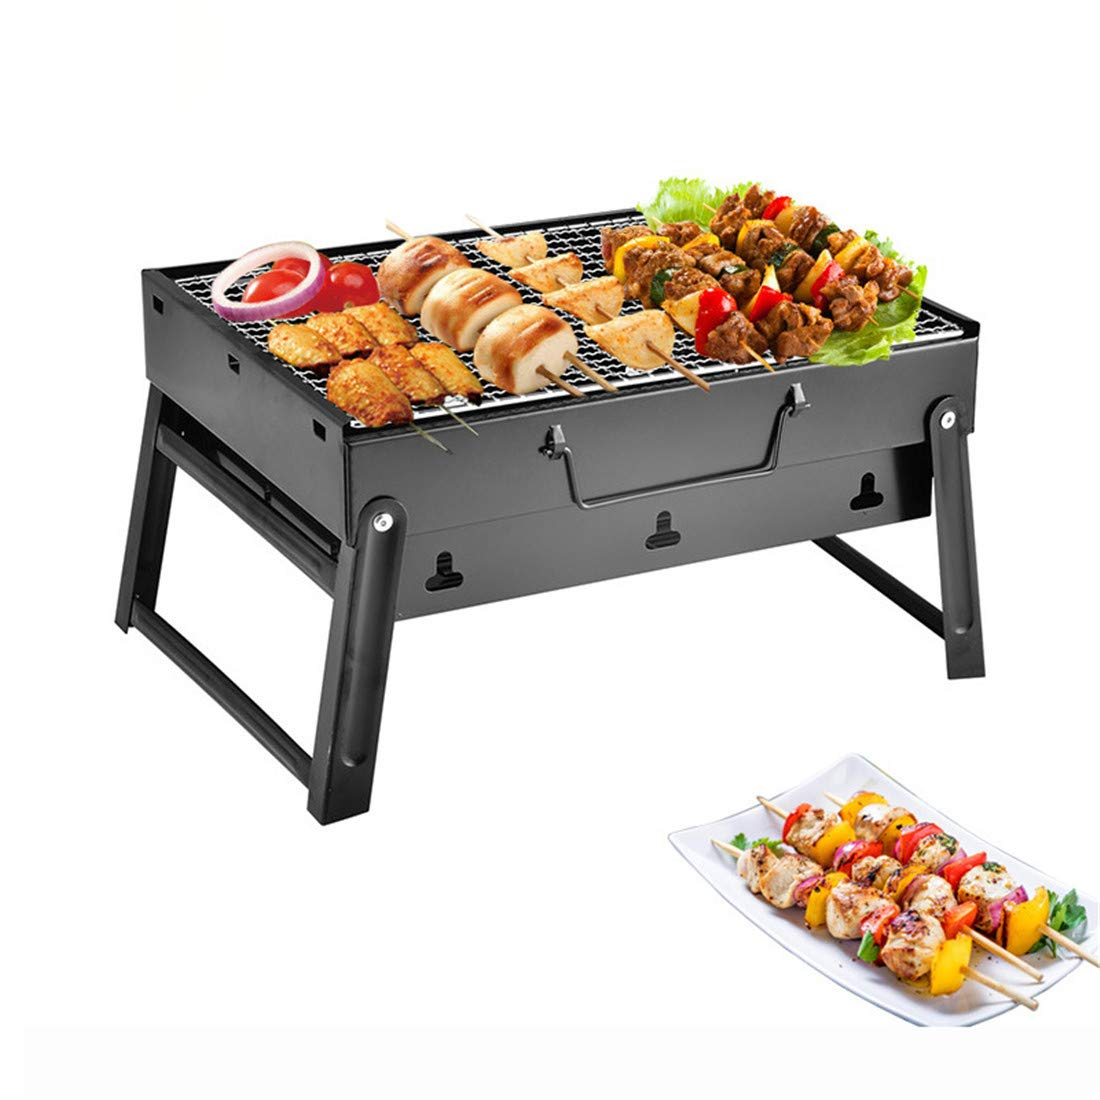 LHY TRAVEL Camping Outdoor tragbarer Grill Multi-Personen-Klapp-Mini-Home-Picknick-Set Holzkohlegrill Familie Outdoor-Kochreise